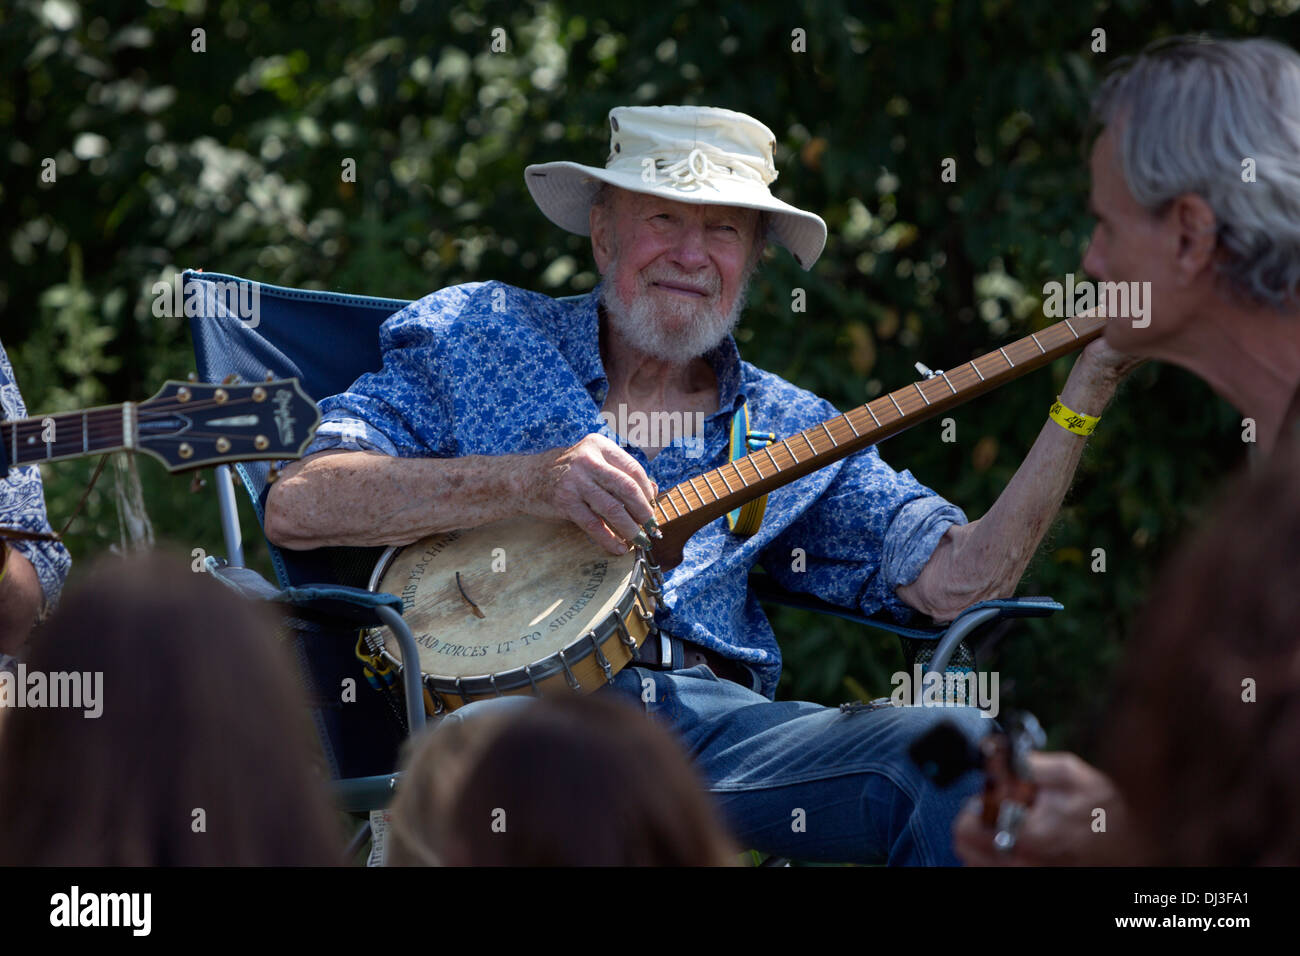 pete-seeger-at-the-solar-expo-jam-folk-f